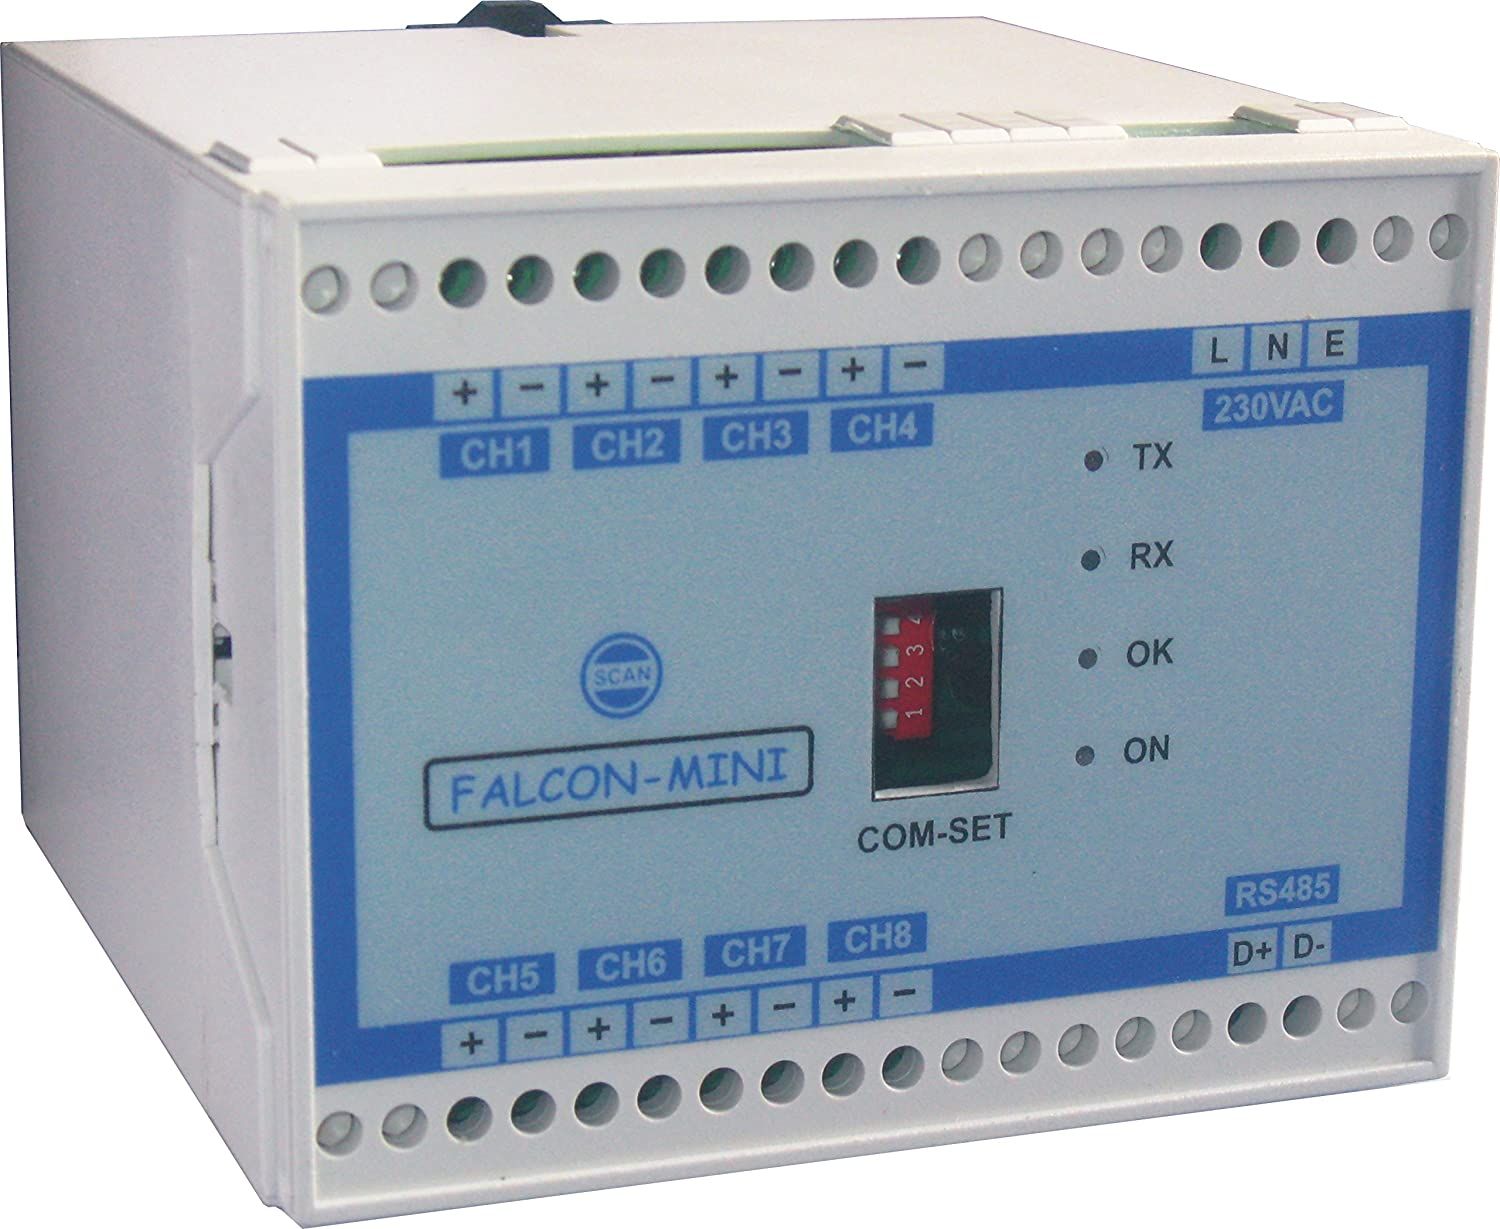 4-20 mA to RS485 Converter with 230V AC Supply: Amazon.in: Electronics